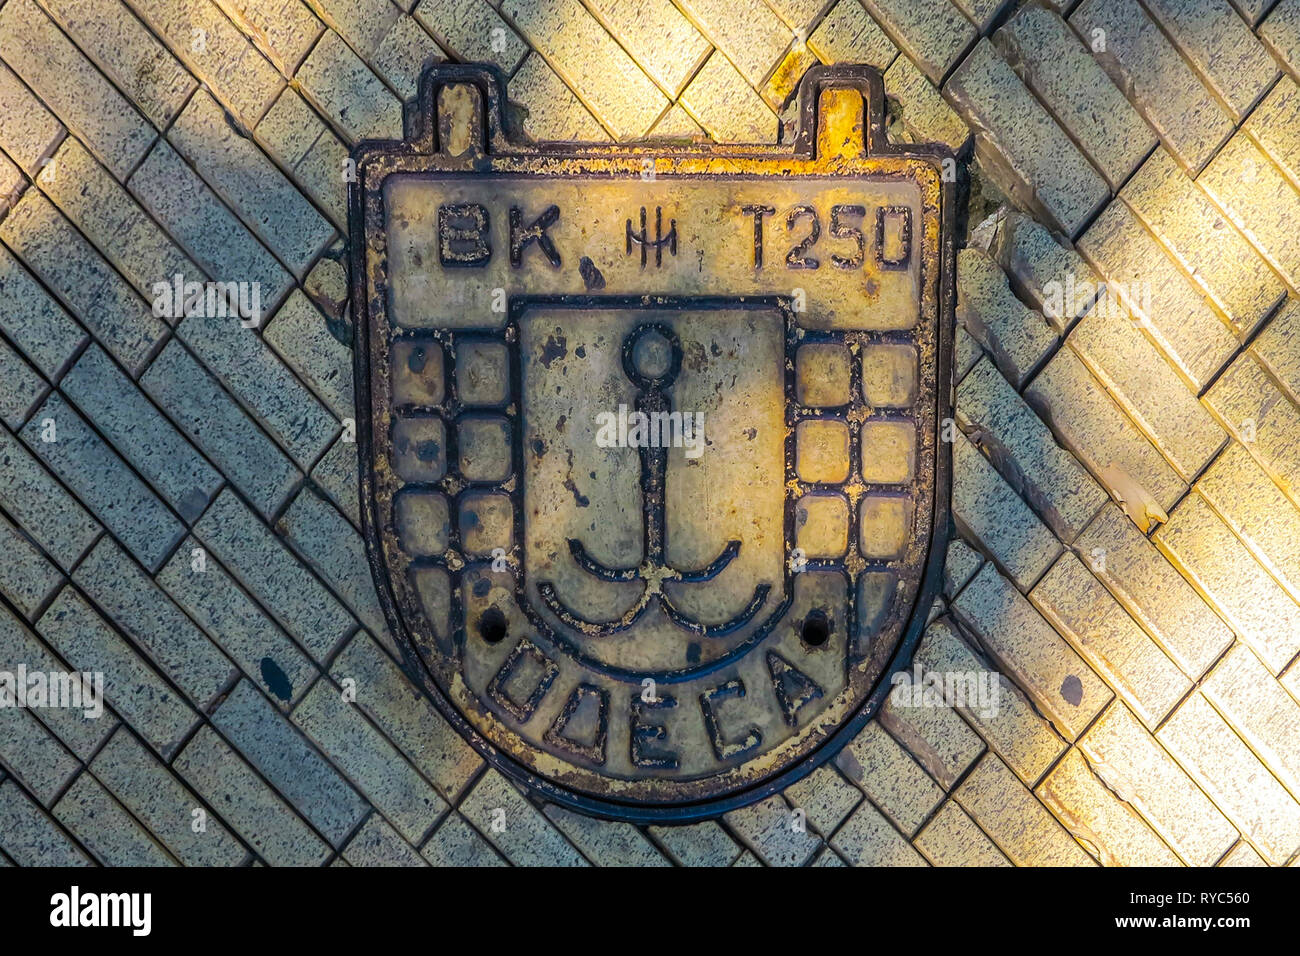 827cfb70528 Odessa Sewer Manhole Cover in Russian Cyrillic Letters High Angle View -  Stock Image